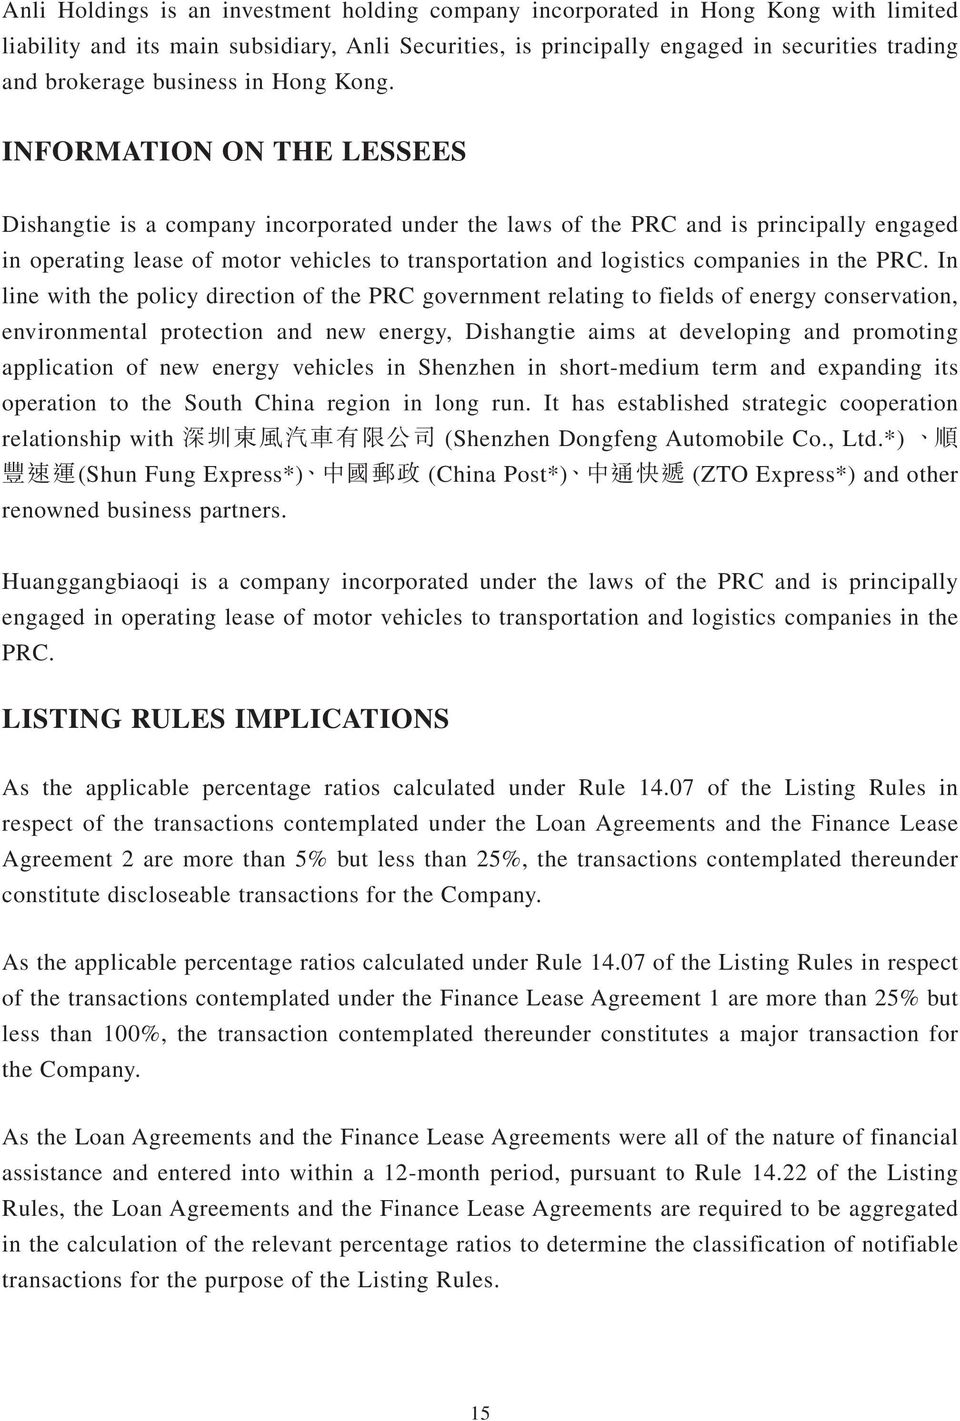 INFORMATION ON THE LESSEES Dishangtie is a company incorporated under the laws of the PRC and is principally engaged in operating lease of motor vehicles to transportation and logistics companies in